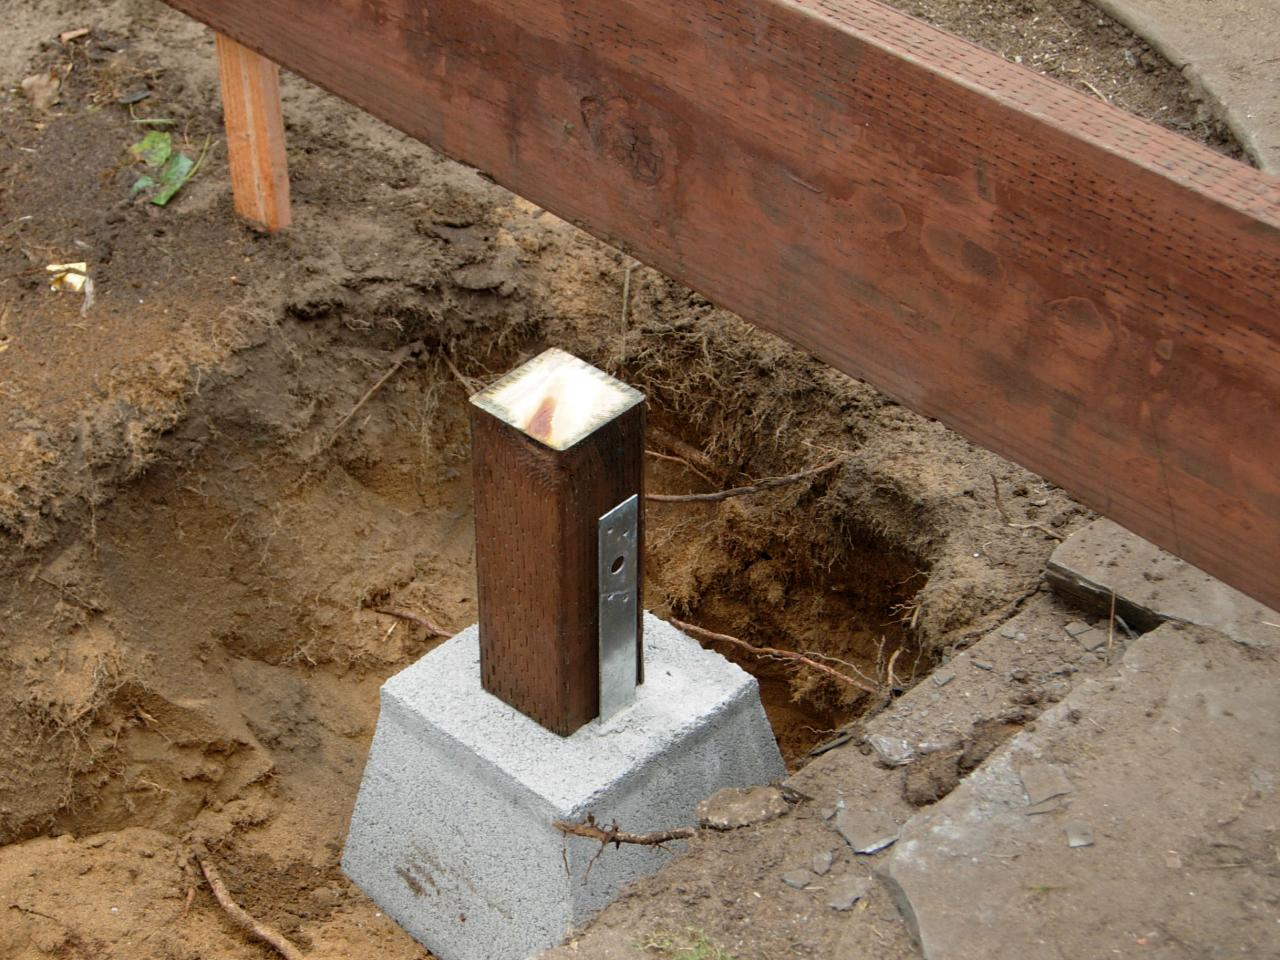 Precast Concrete Piers | Precast Concrete Footings for Decks | Deck Footing Block